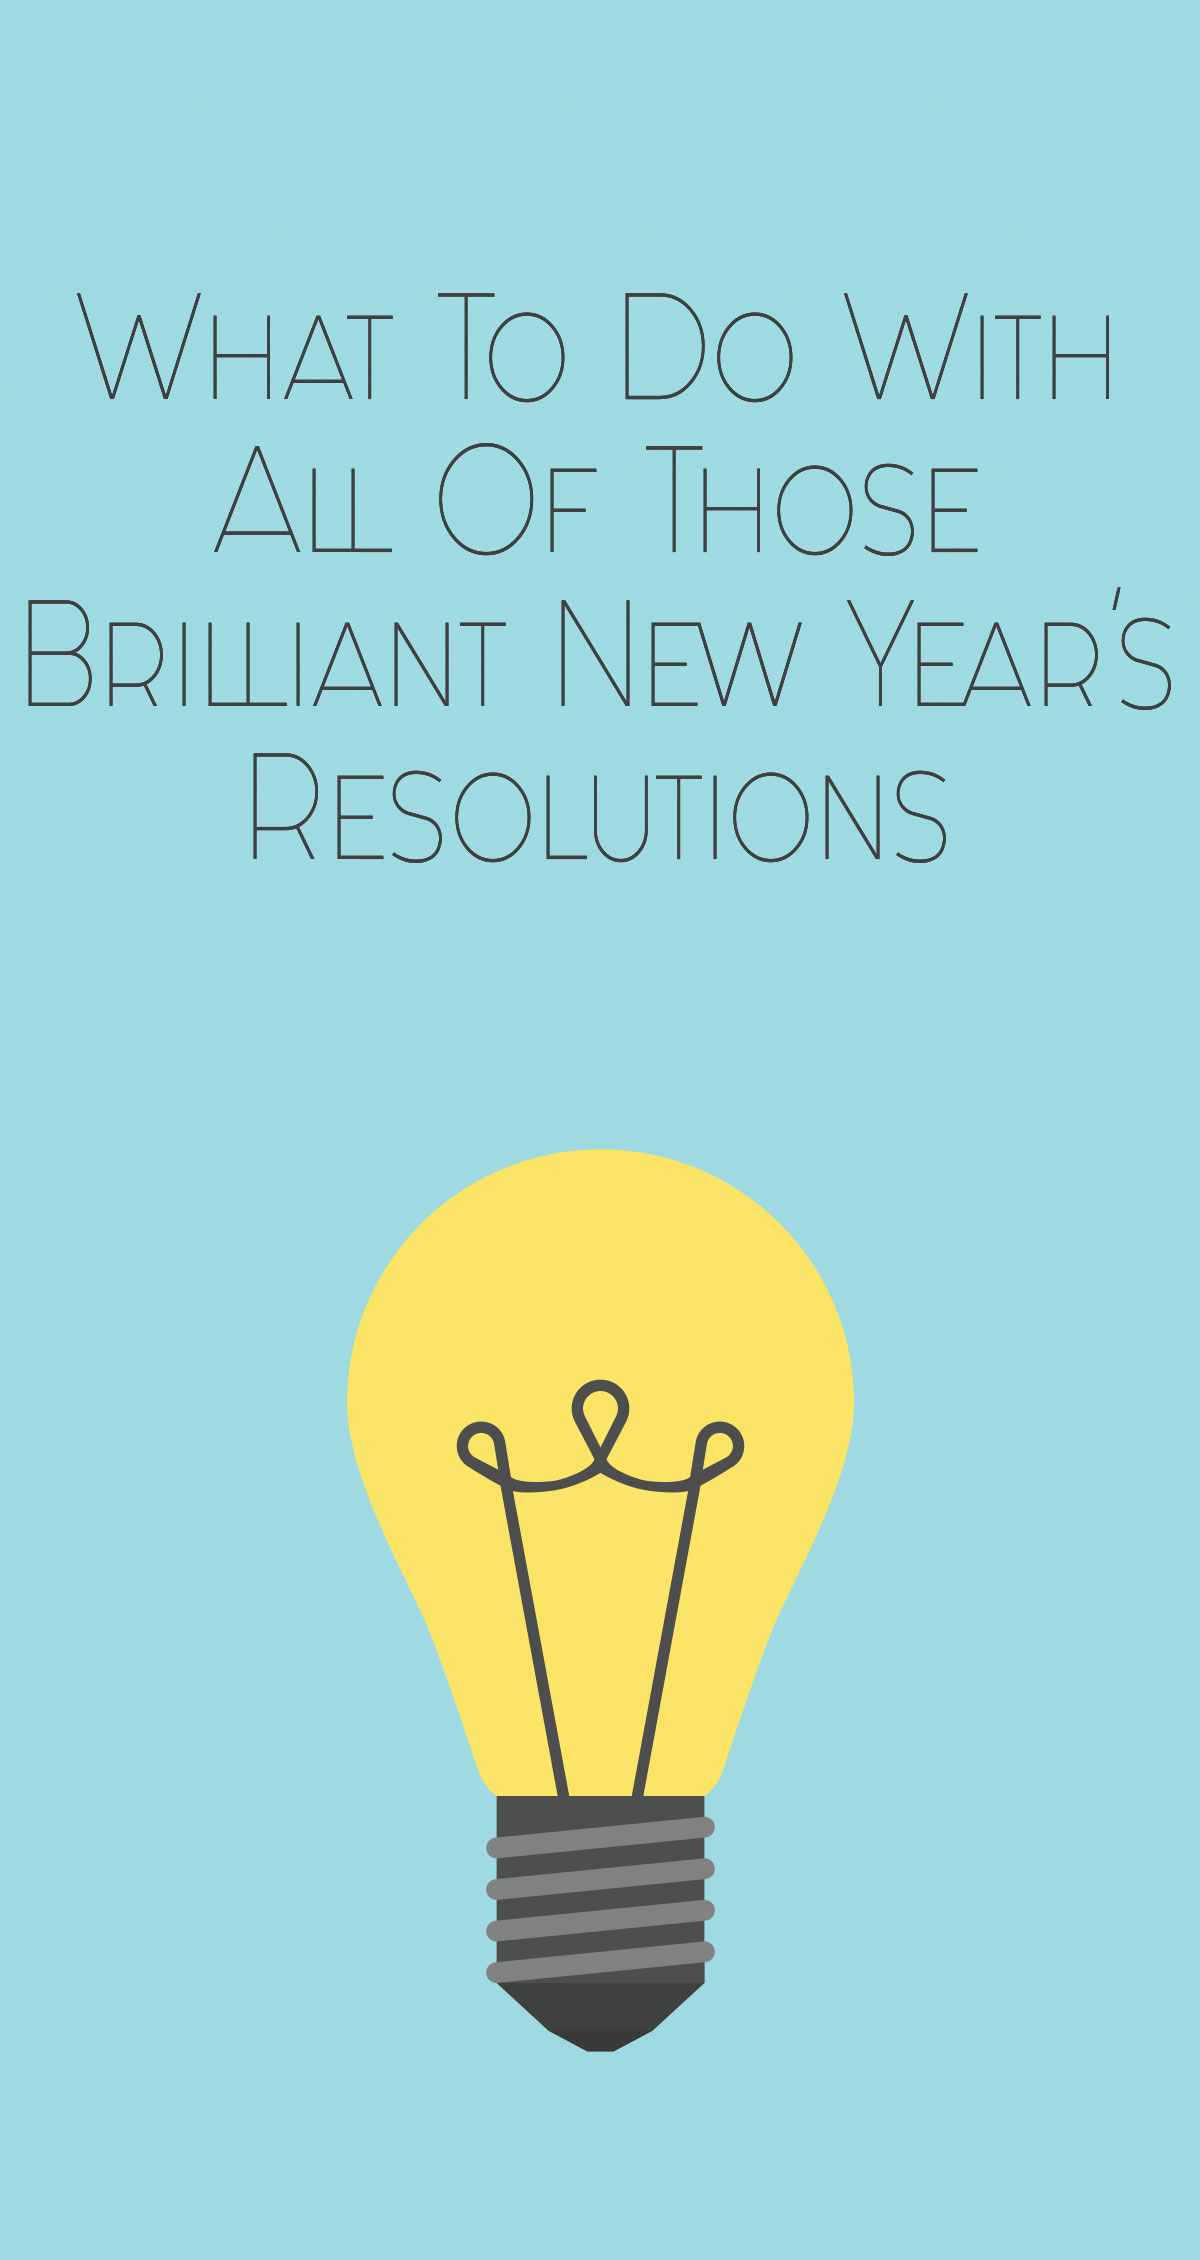 What to Do With All Those Brilliant New Year's Resolutions Pin